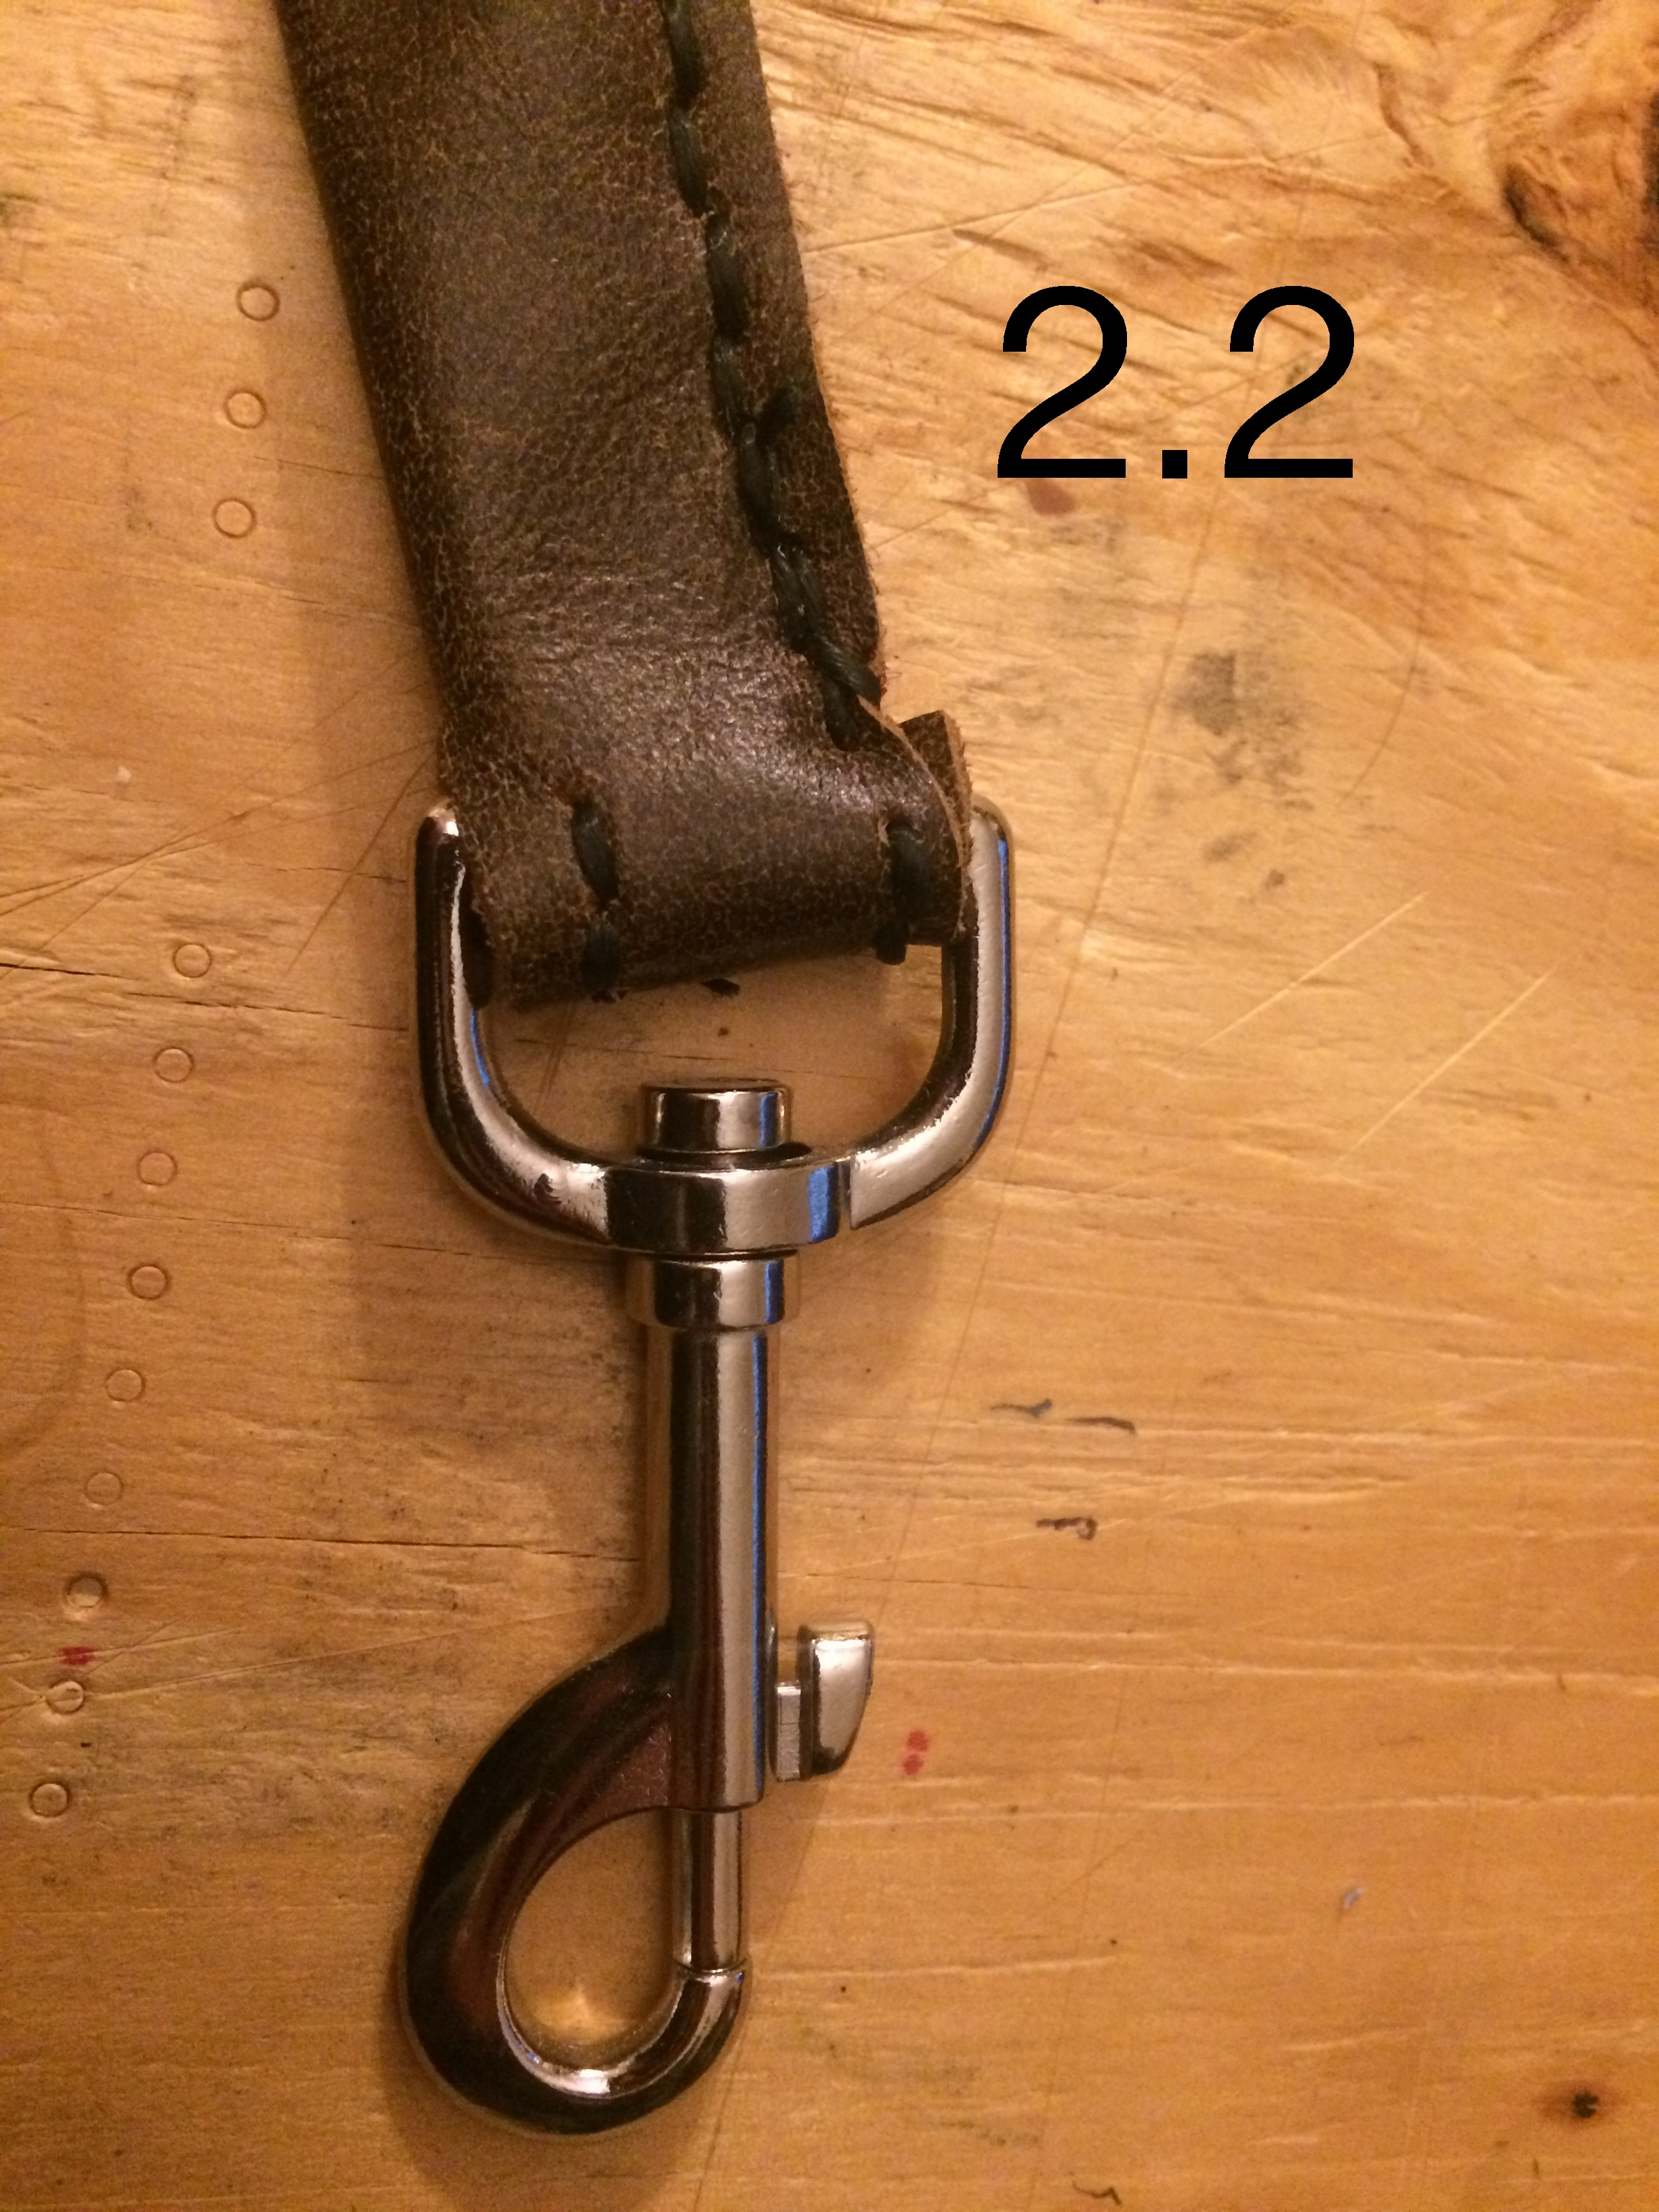 Picture of Straps Continued: Lower Portion of Strap & Handle